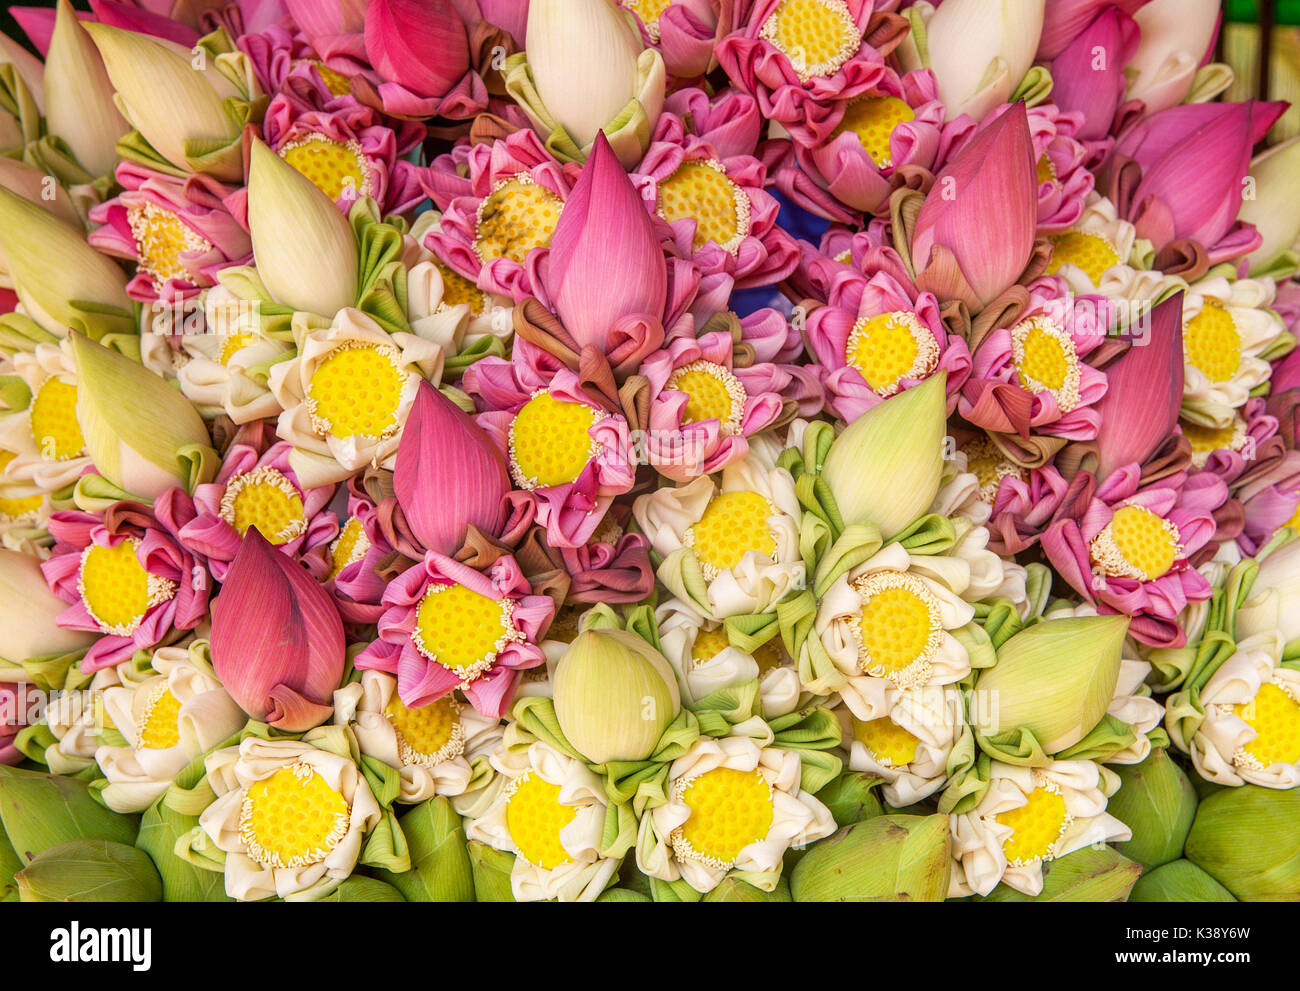 Close up of a beautiful flower arrangement made of pink and white close up of a beautiful flower arrangement made of pink and white banana flower blossoms and seed heads for sale in siem reap cambodia izmirmasajfo